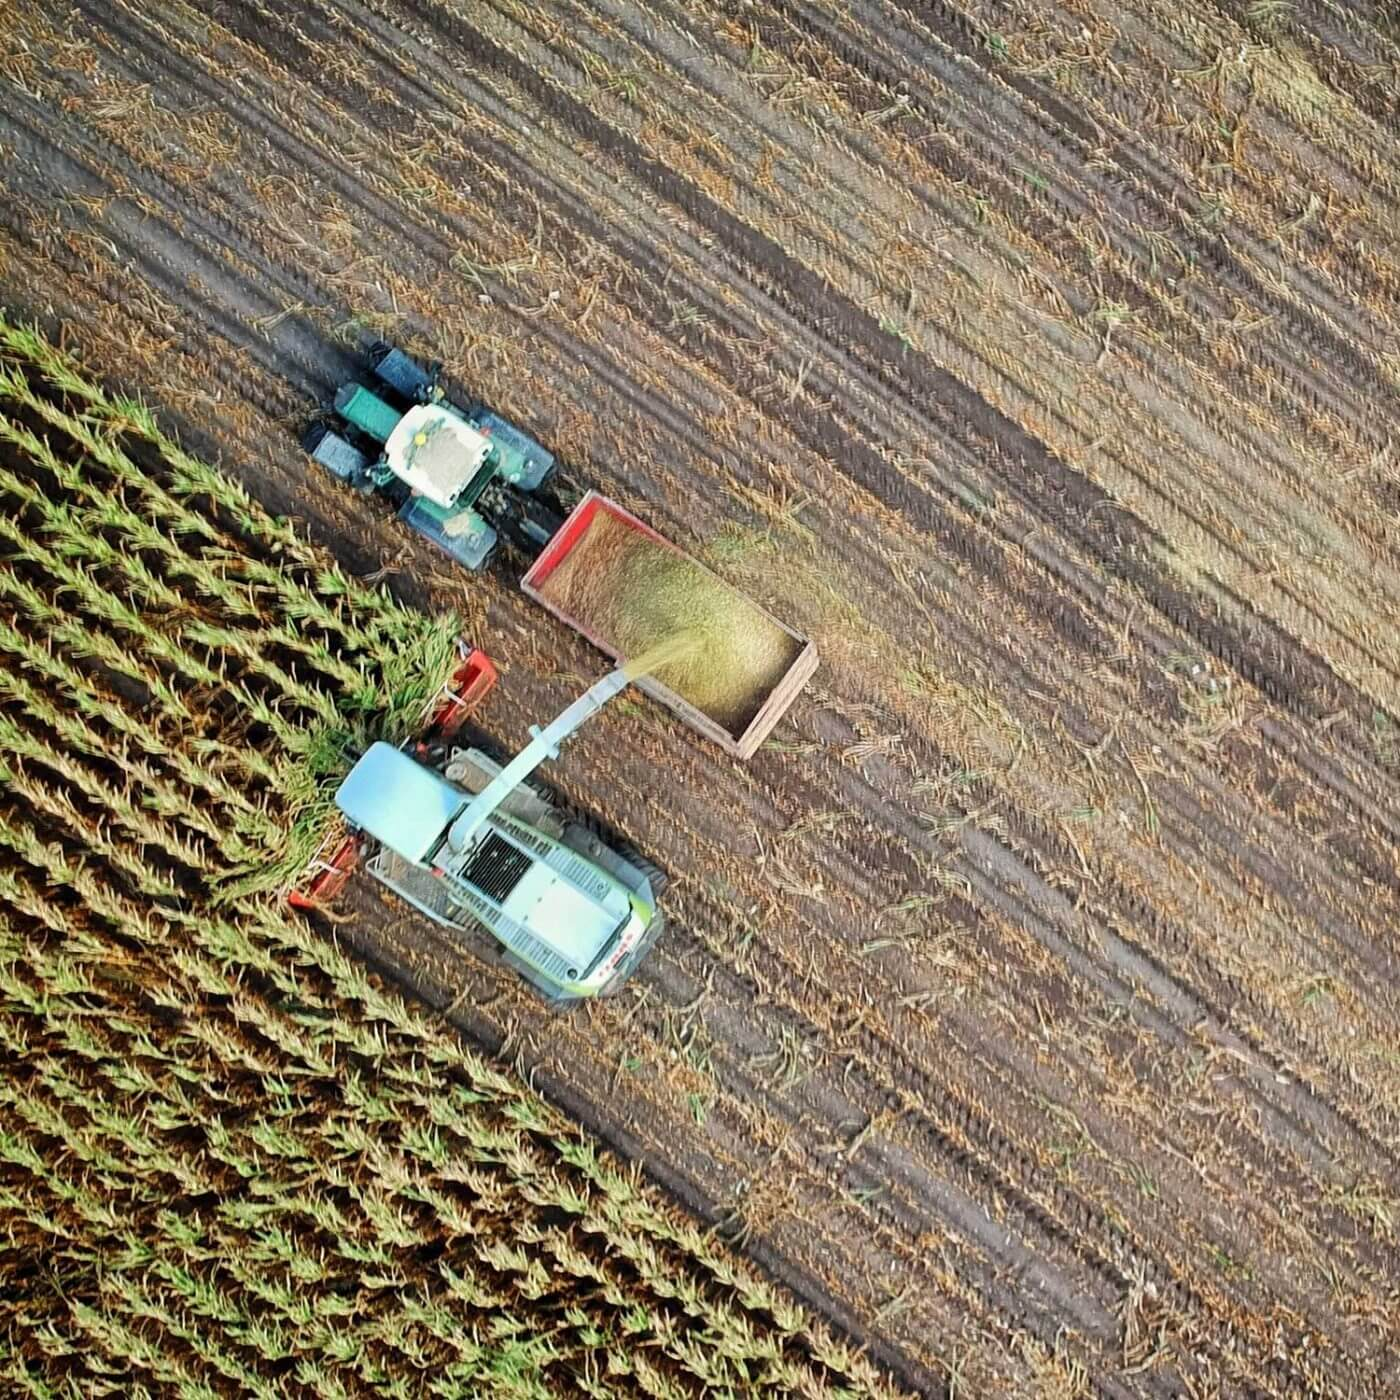 Two trucks in an agricultural field harvesting crops.